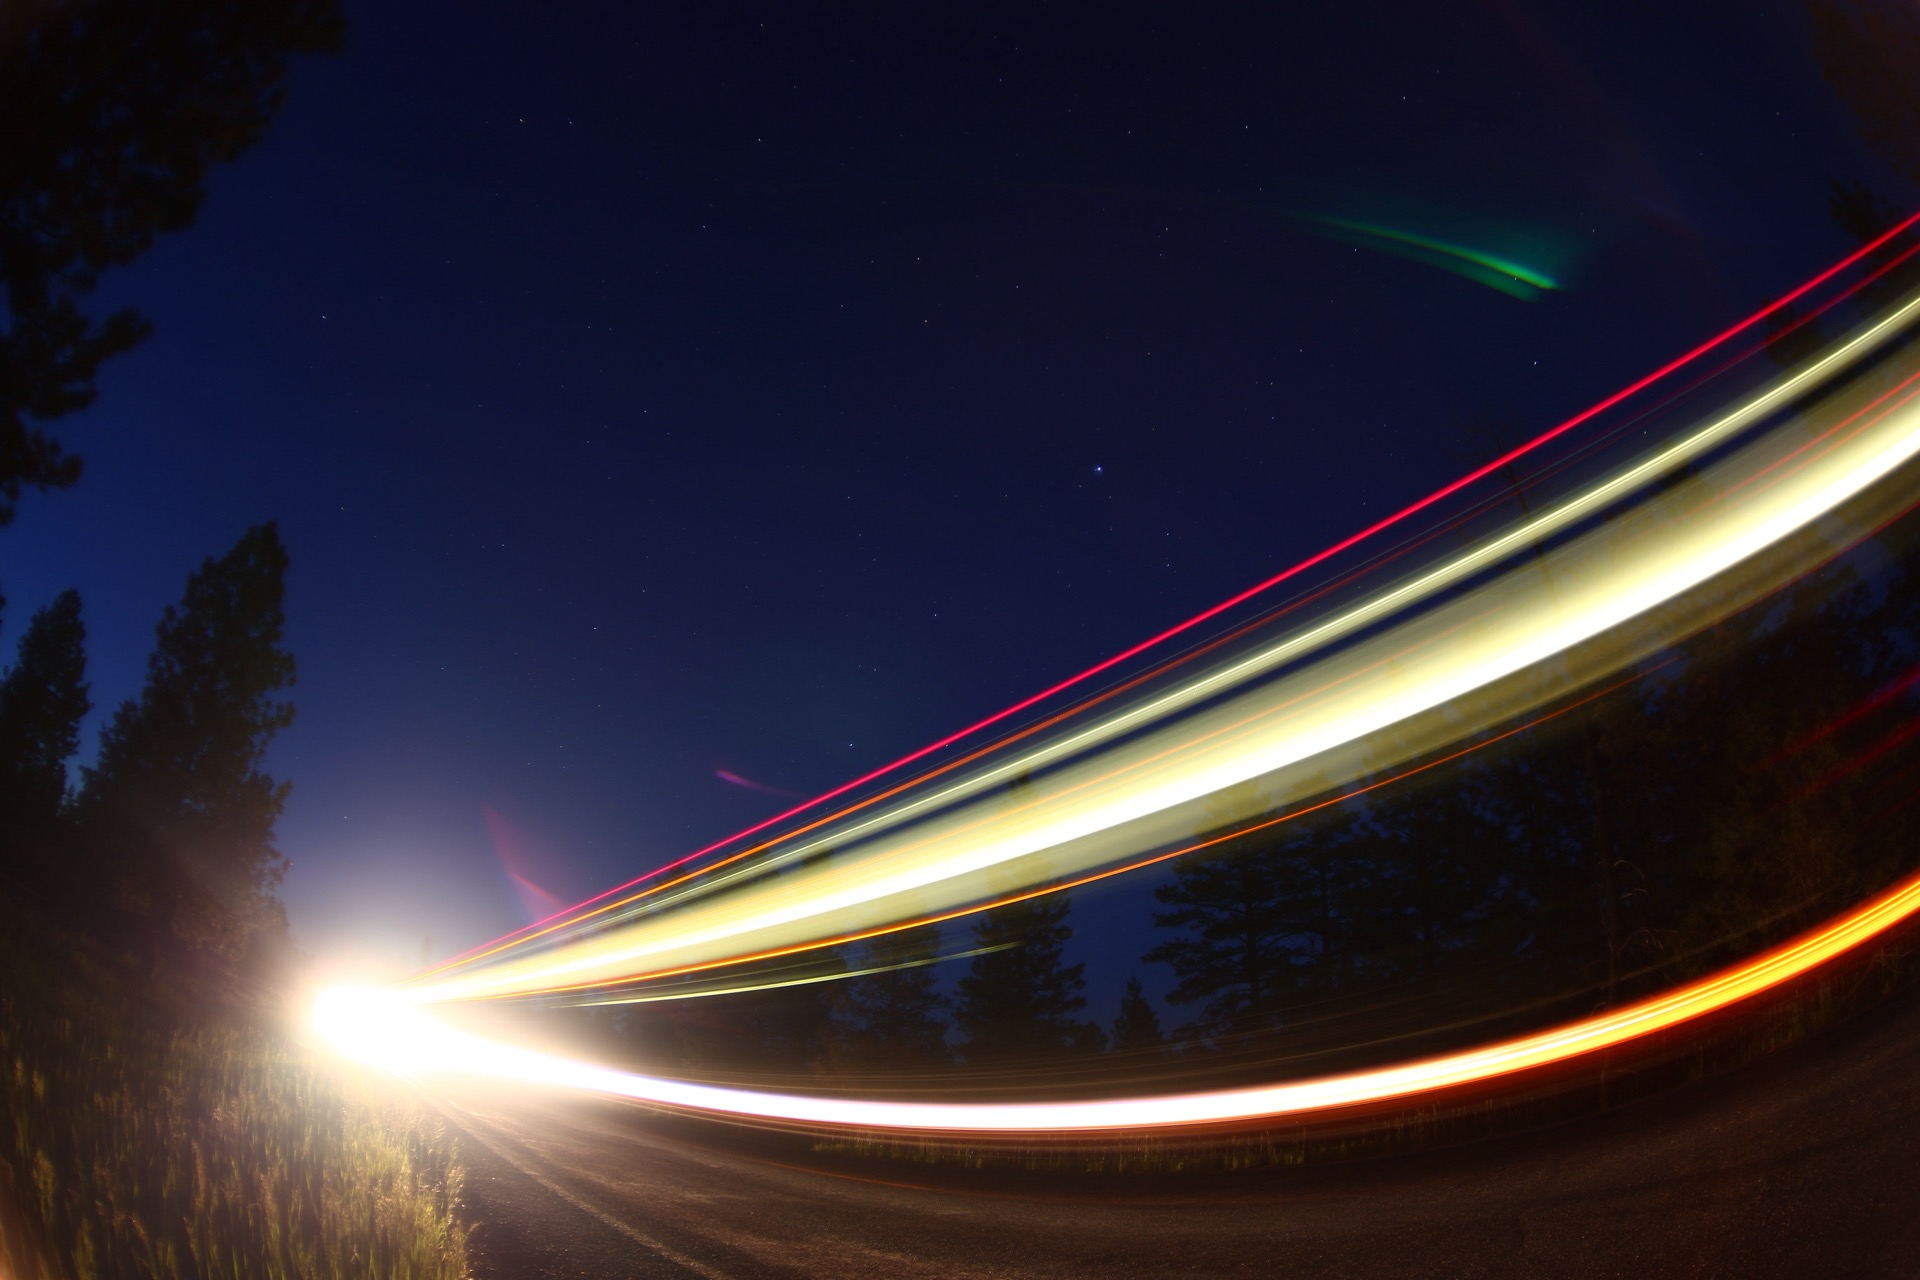 Long exposure shot of some passing cars at night